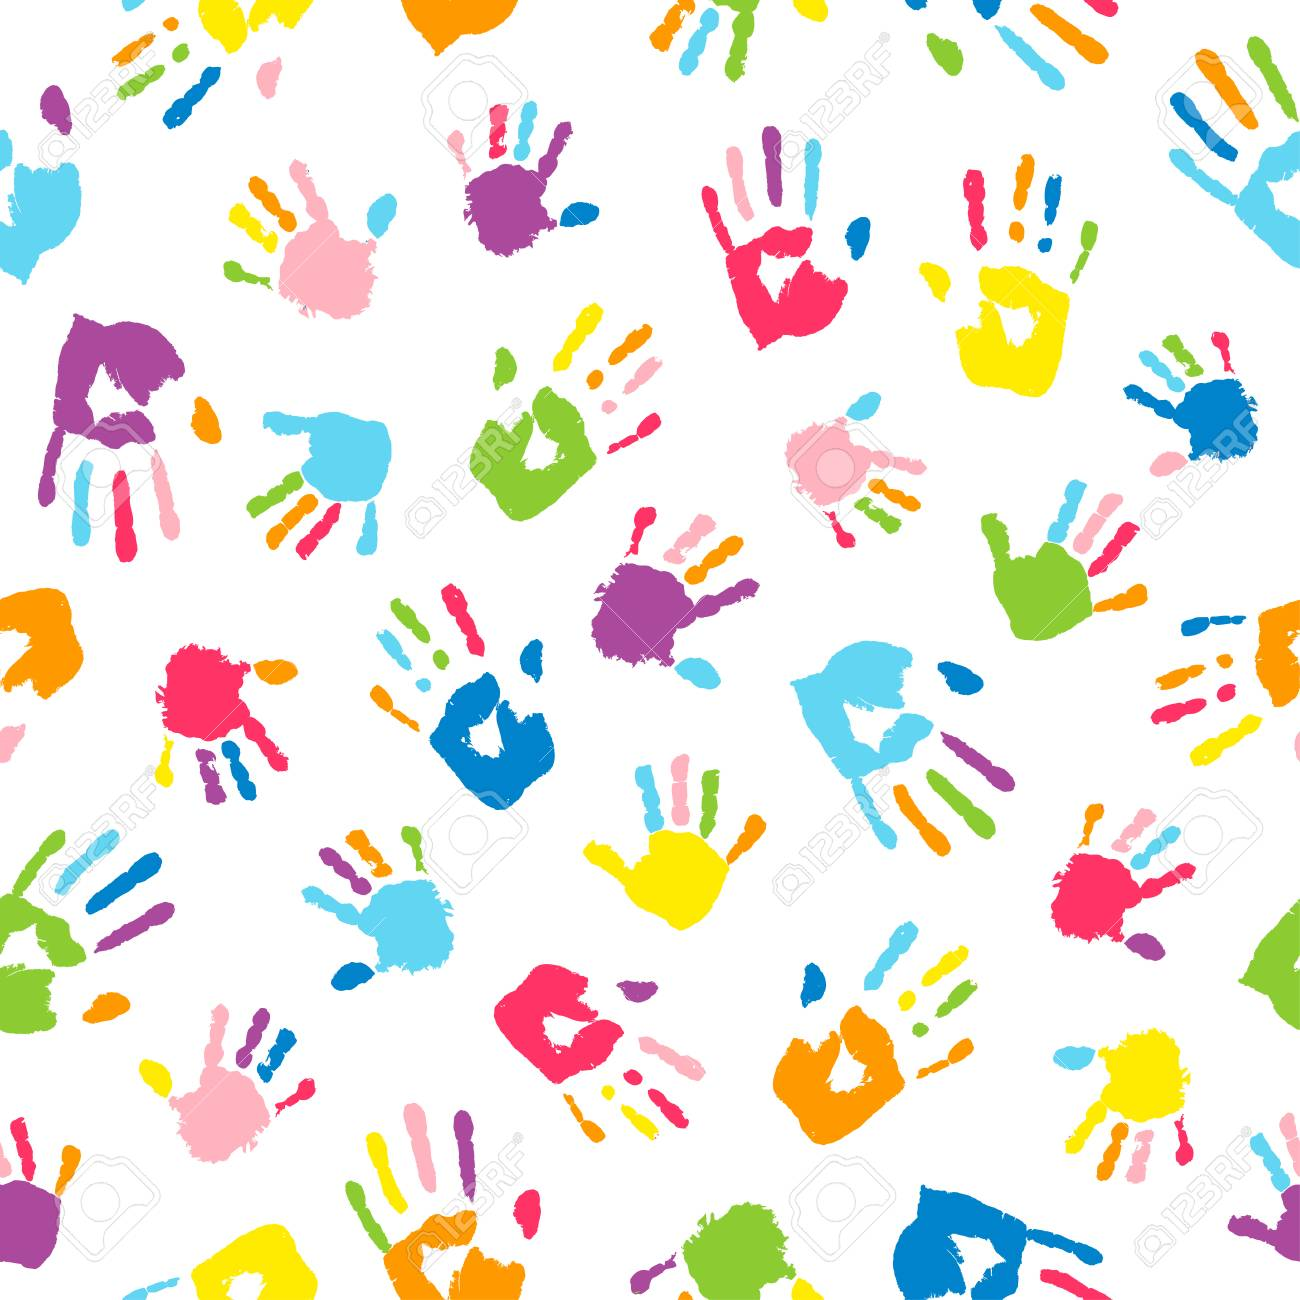 Seamless background made from colorful handprints. Palms and fingers colored in rainbow colors. Multicolor pattern for your design. - 122364954